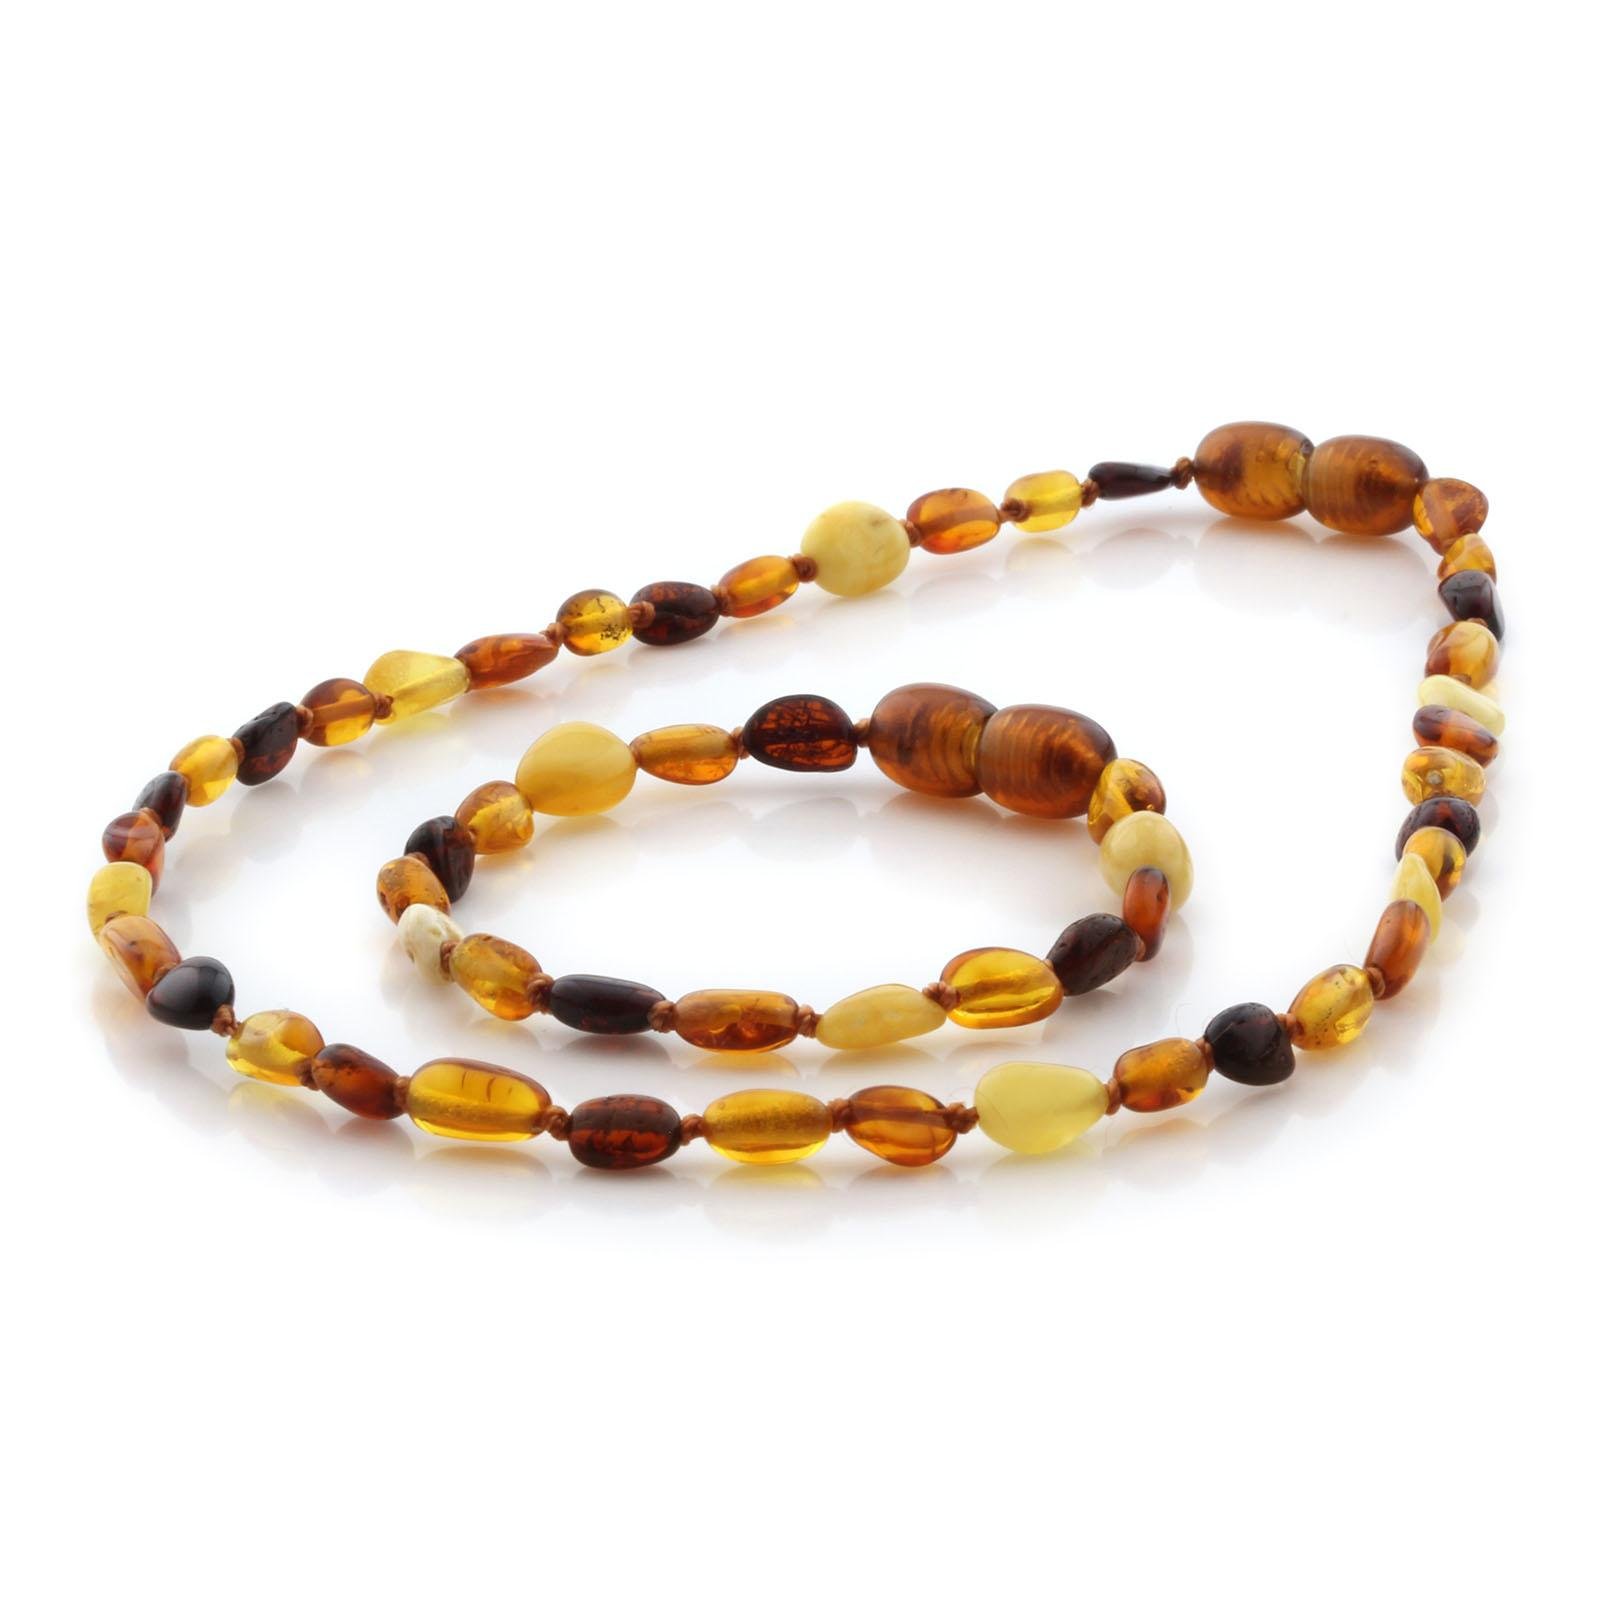 SET BE129 Kalung dan Gelang Baltic Amber Baby